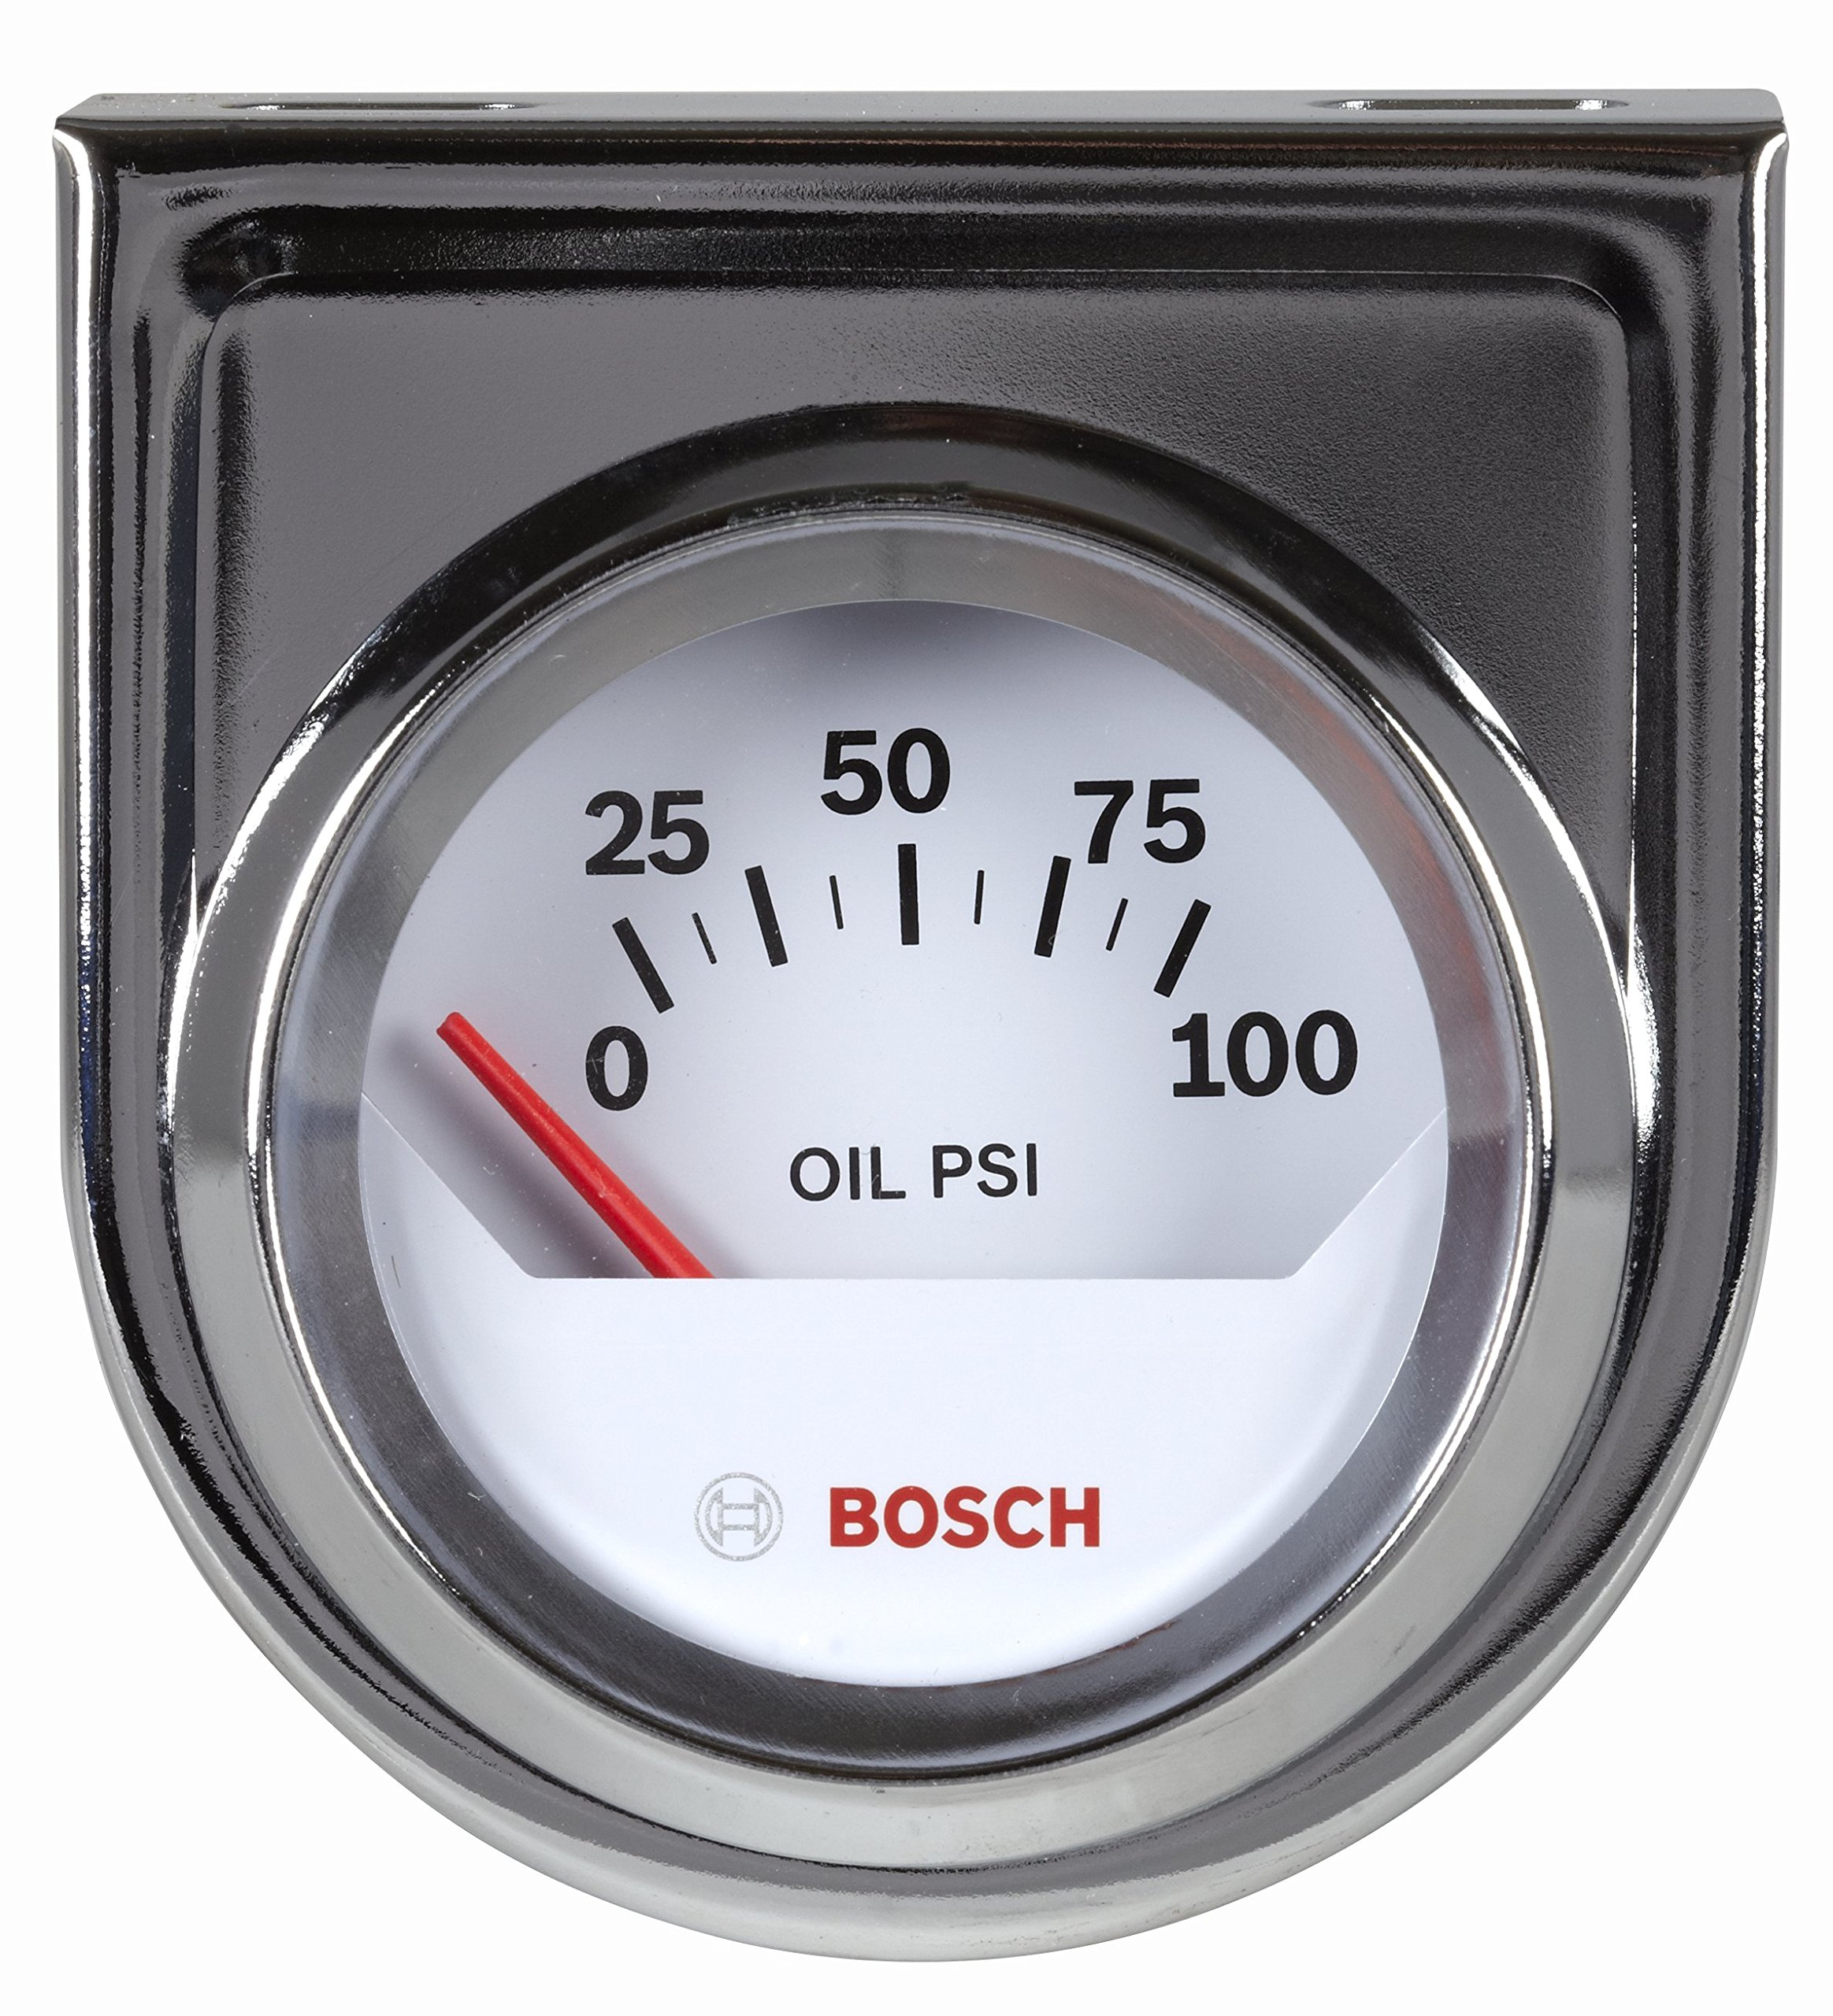 Bosch SP0F000041 Style Line 2'' Electrical Oil Pressure Gauge (White Dial Face, Chrome Bezel) by Bosch